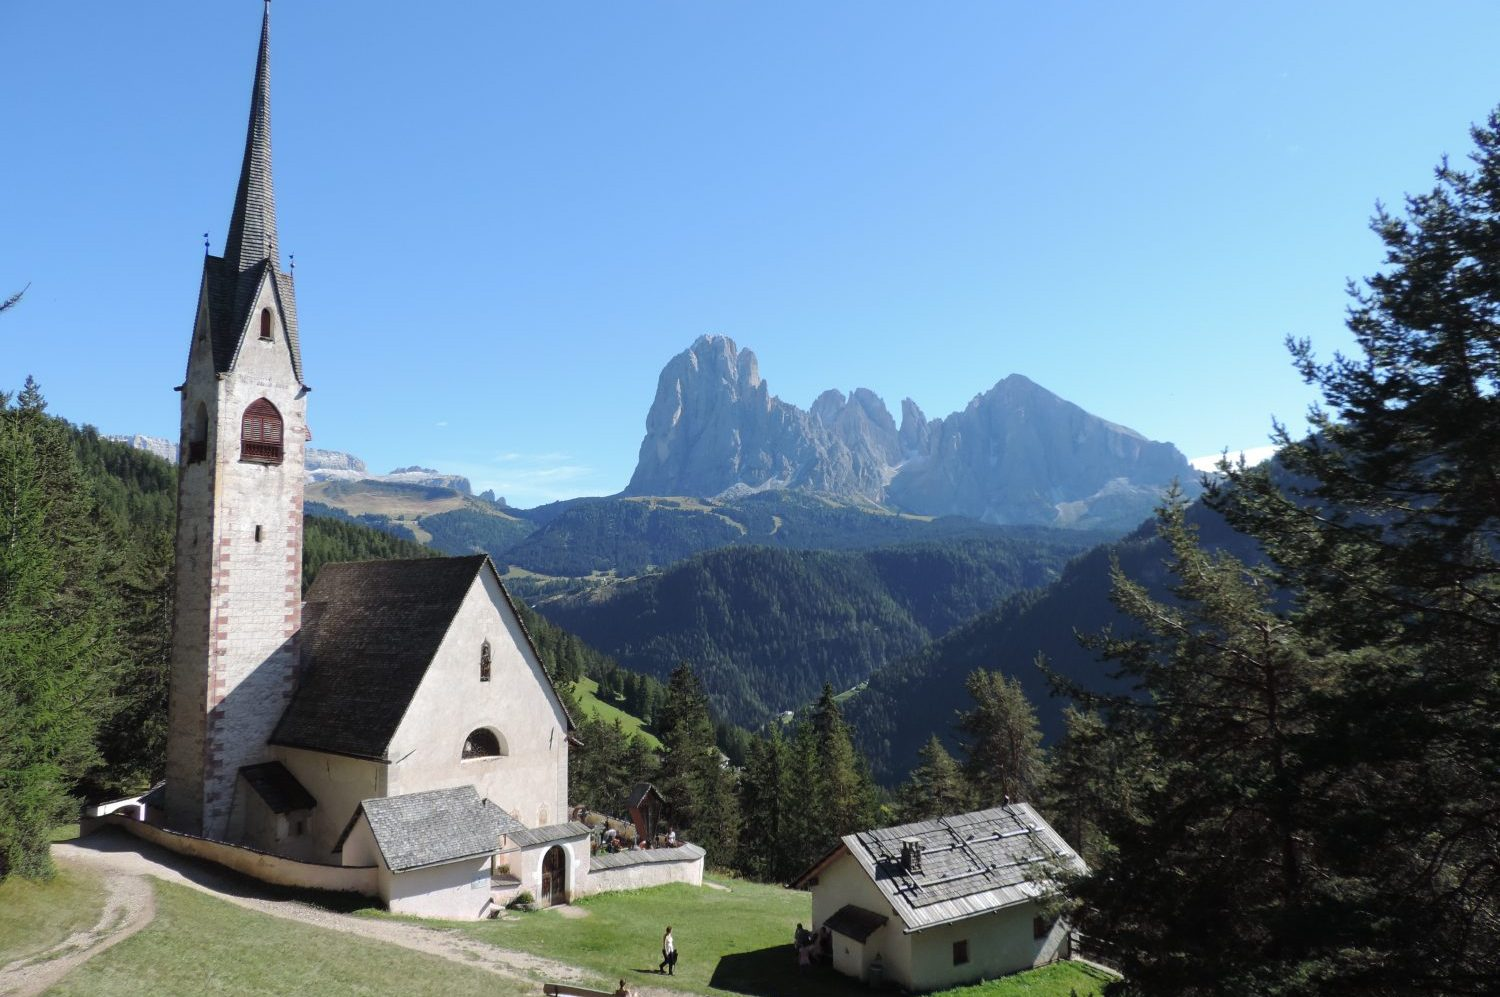 image: spectacular views of the Dolomites from here